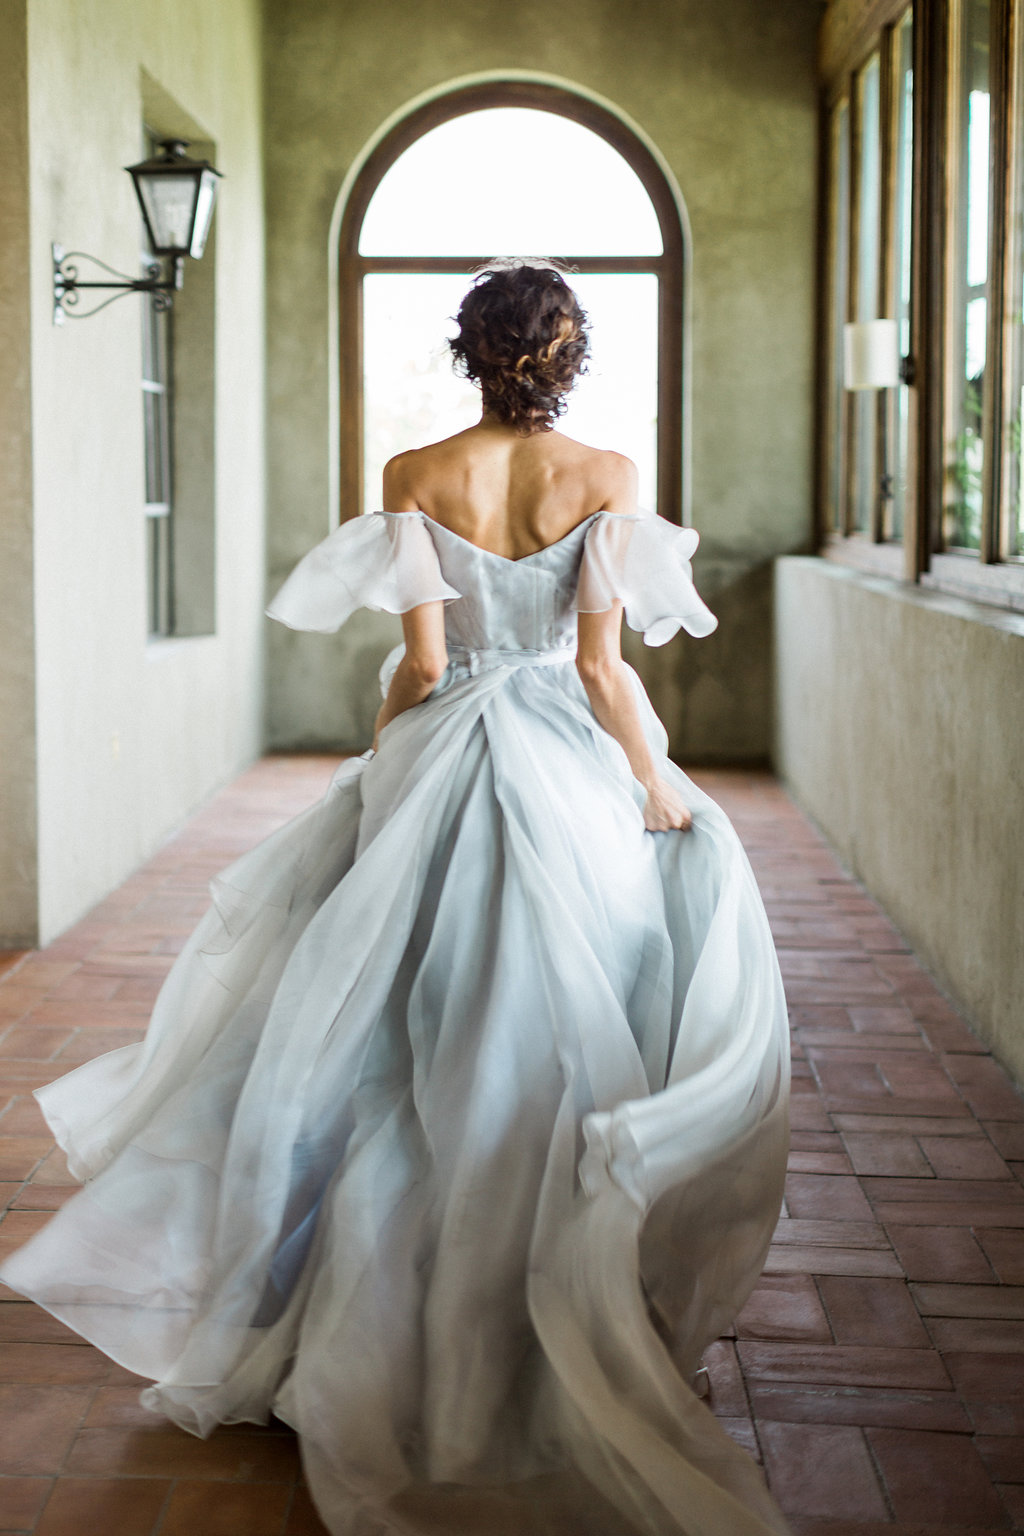 soft blue handpainted wedding gowns - https://ruffledblog.com/cloudy-day-wedding-inspiration-with-a-hand-painted-bridal-gown